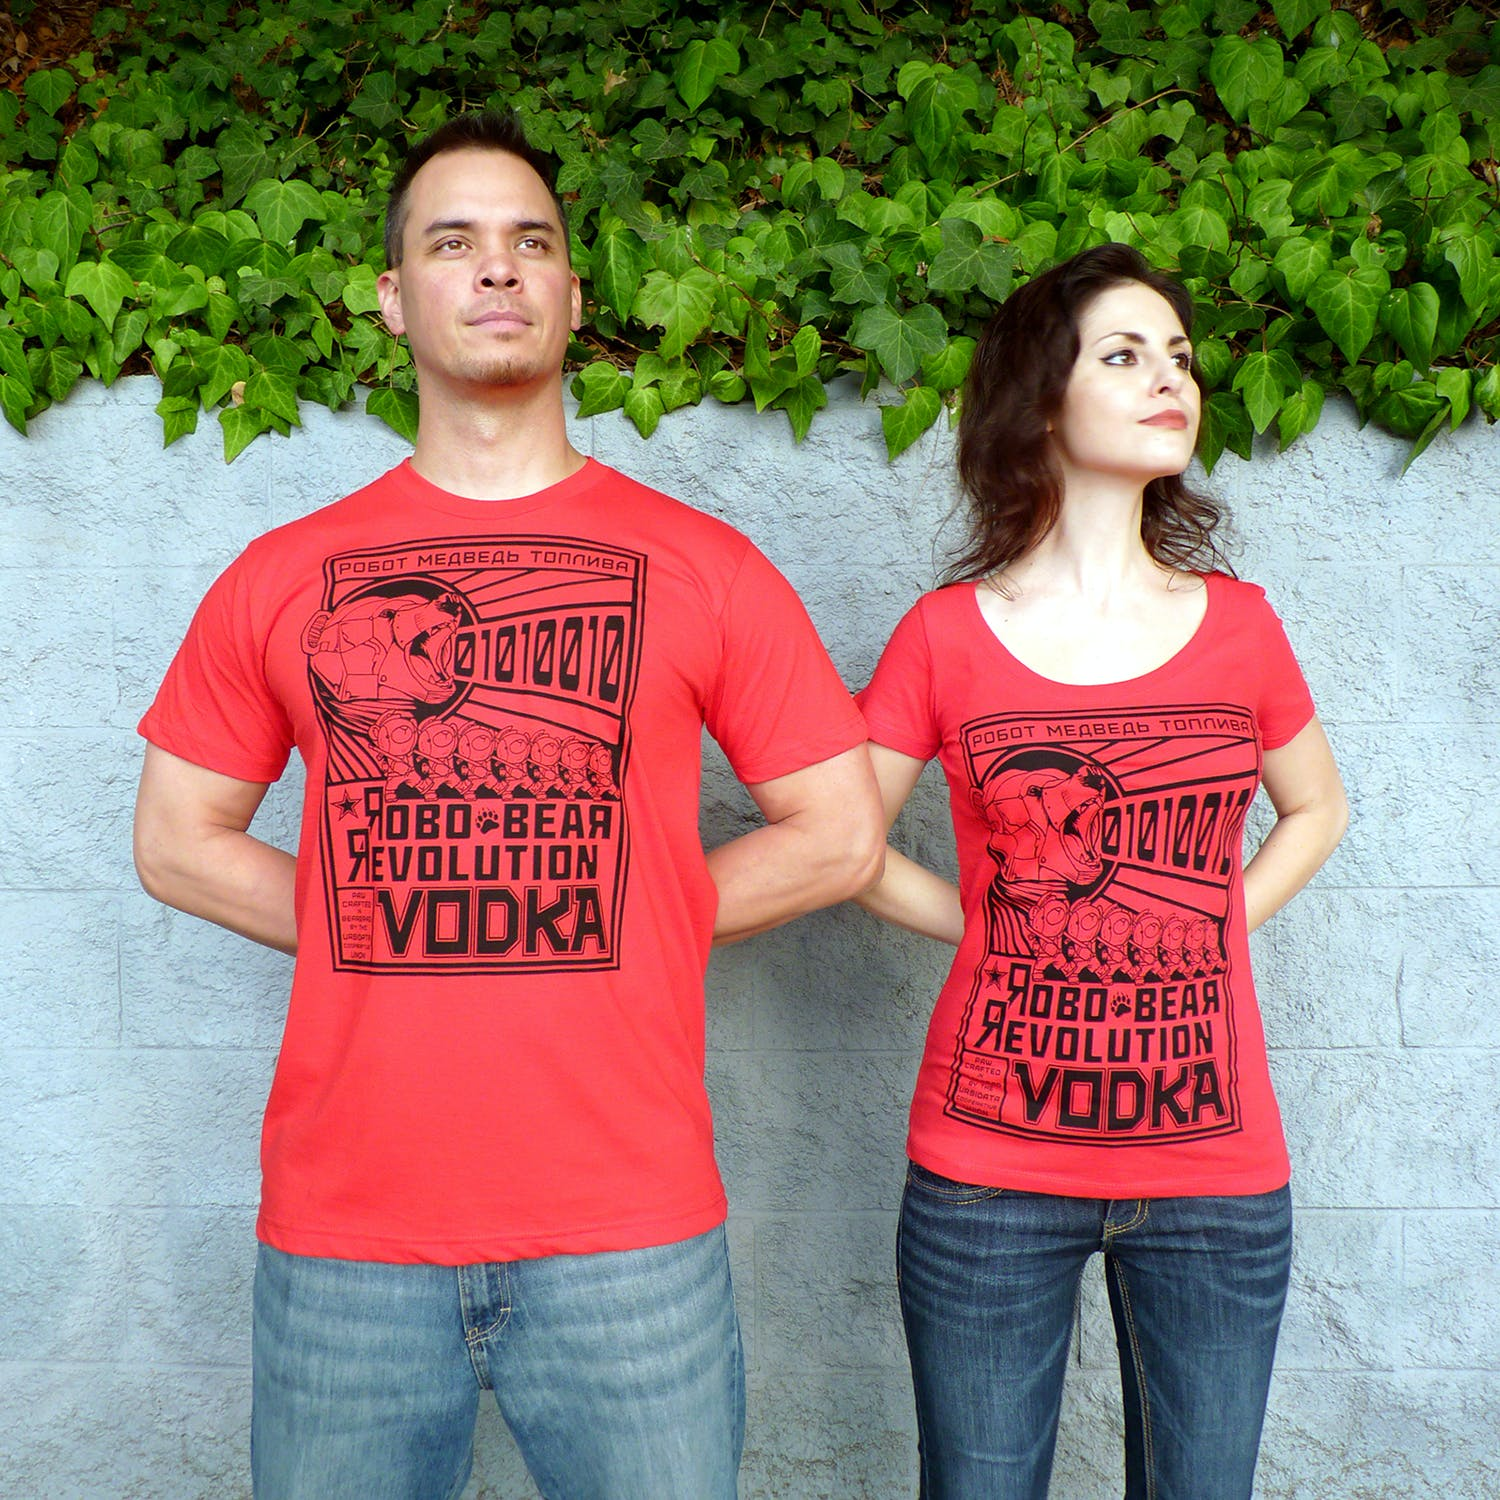 """""""For vodka, I just had to do a Constructivist design,"""" Vrosh said. """"Russia has very rich folklore for a fantasy angle, but I thought a futuristic setting would fit better with the Constructivist style. Since the bear is such a symbol for Russia, we decided on Robo Bear Revolution Vodka. The design being propaganda for the great robot bear labor uprising."""""""